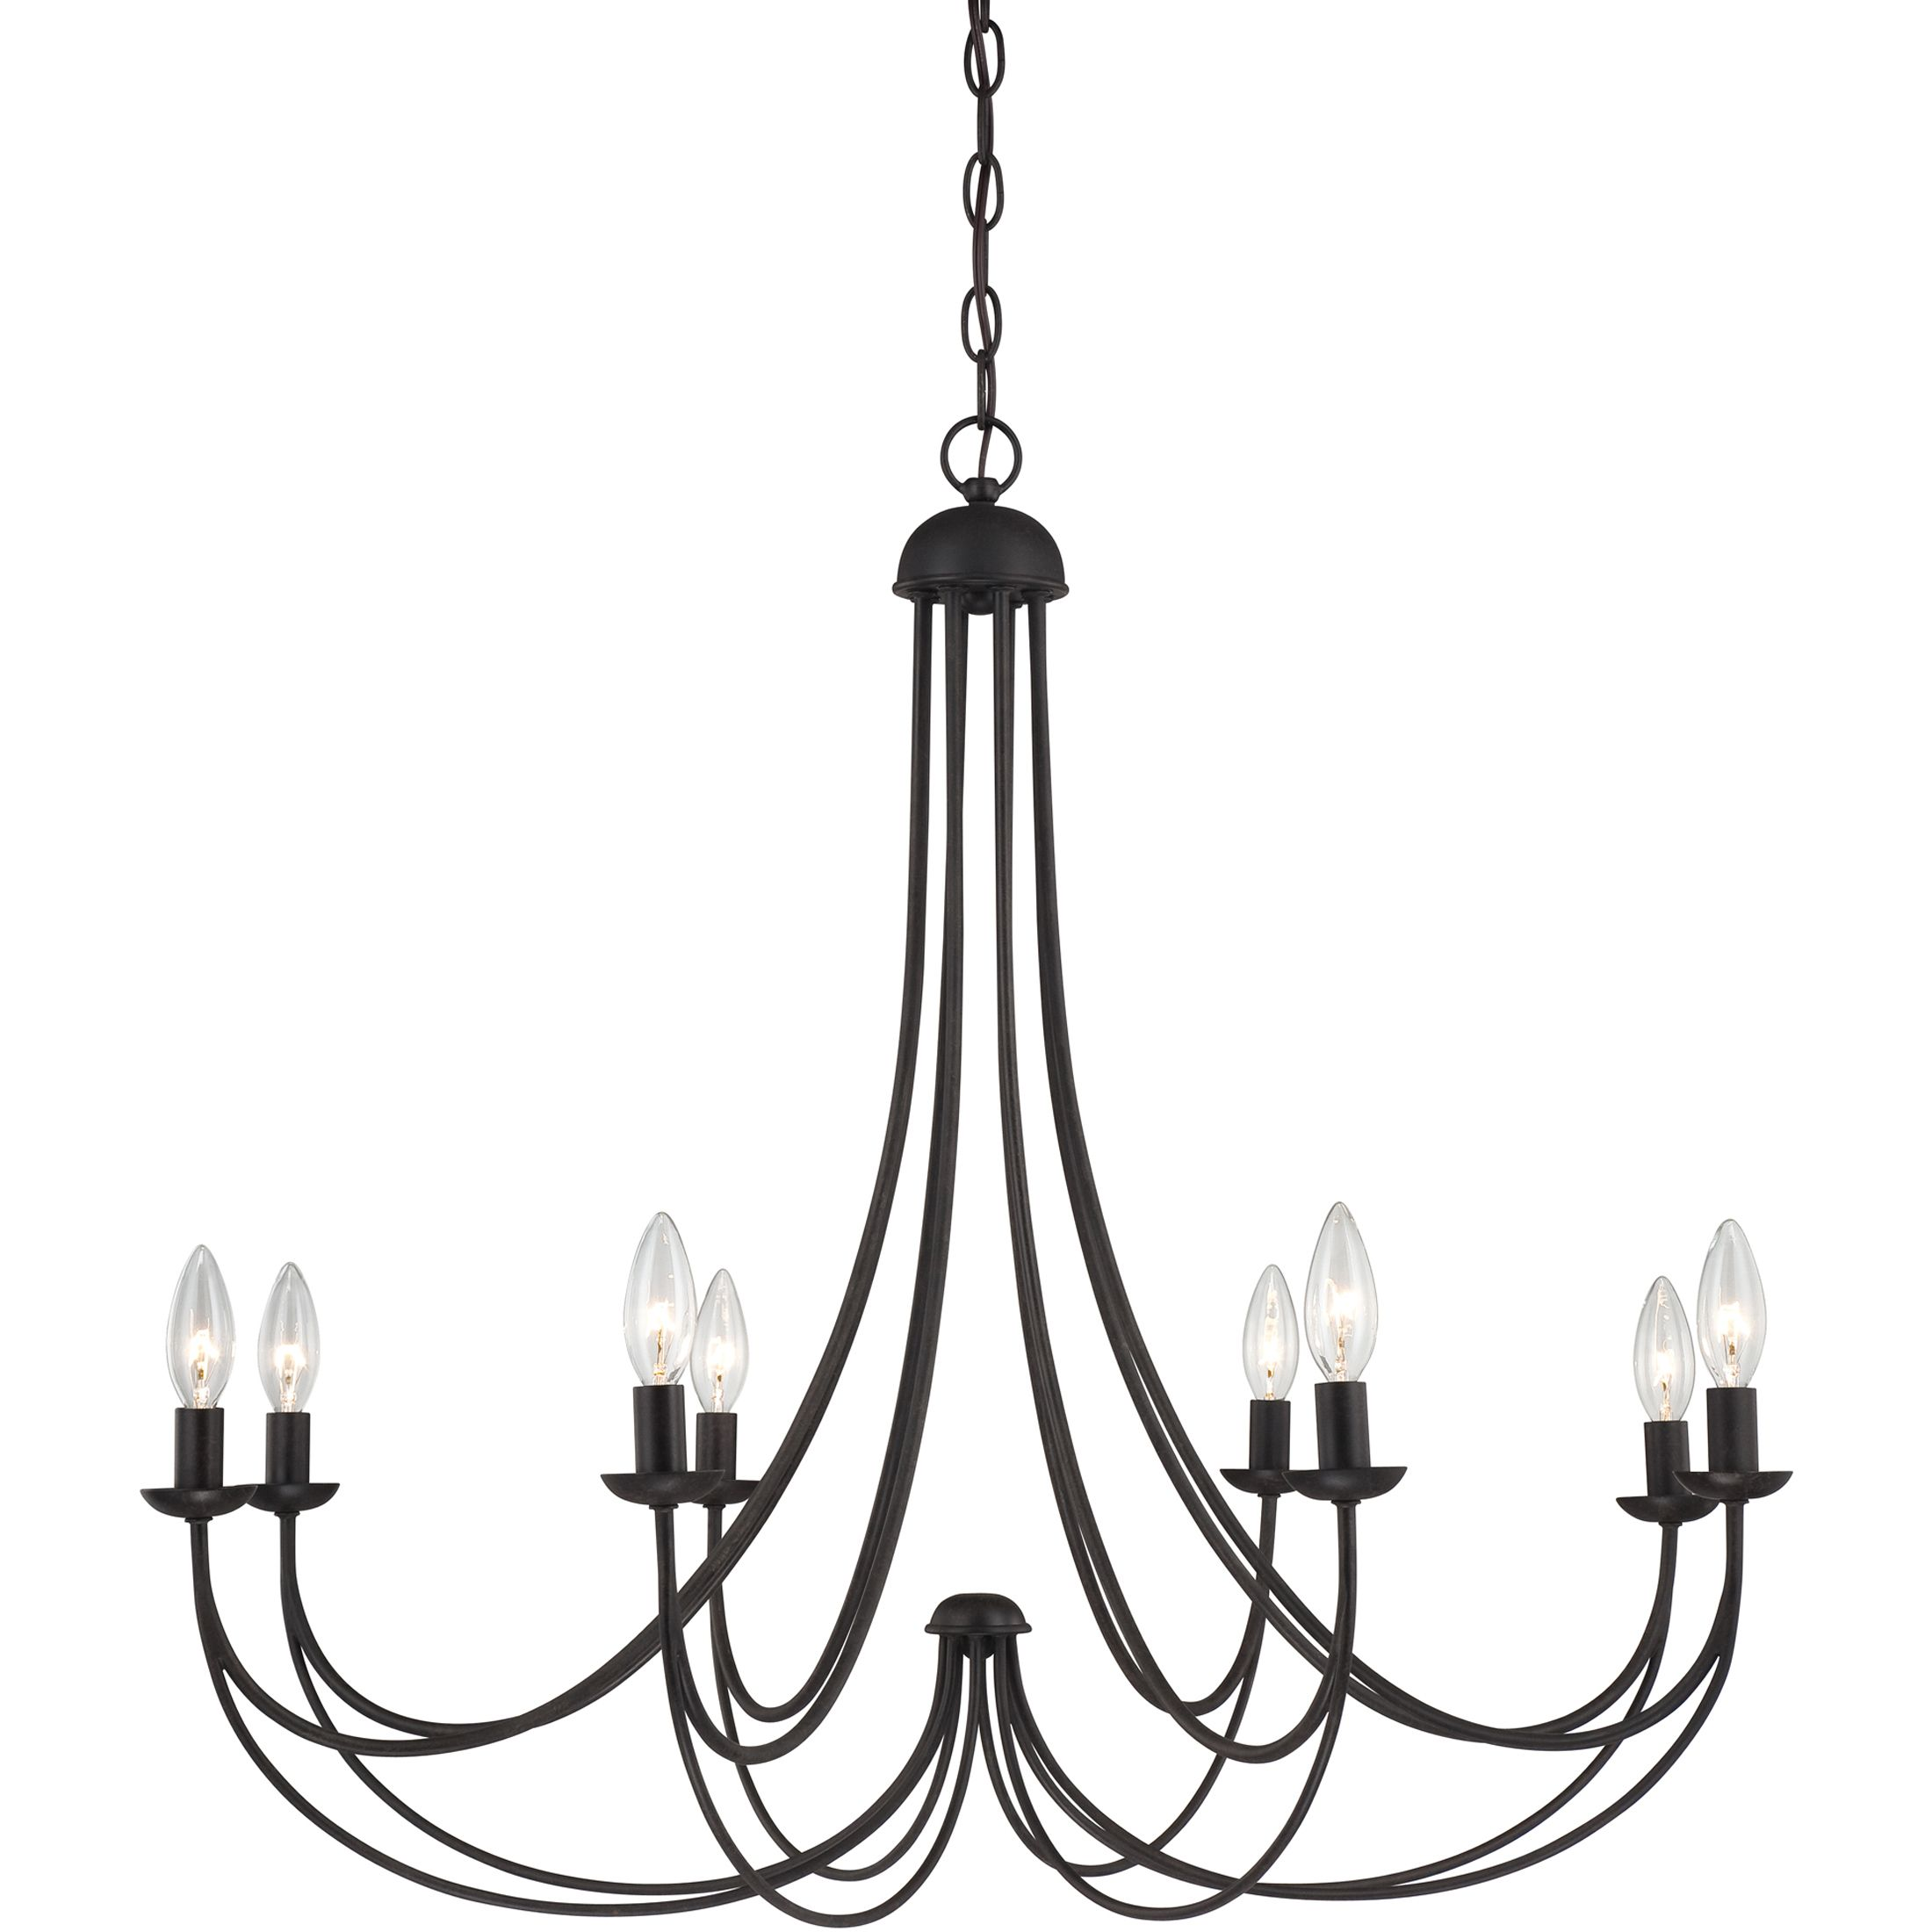 Morning Room Quoizel Mrn Ib Chandelier Imperial Bronze